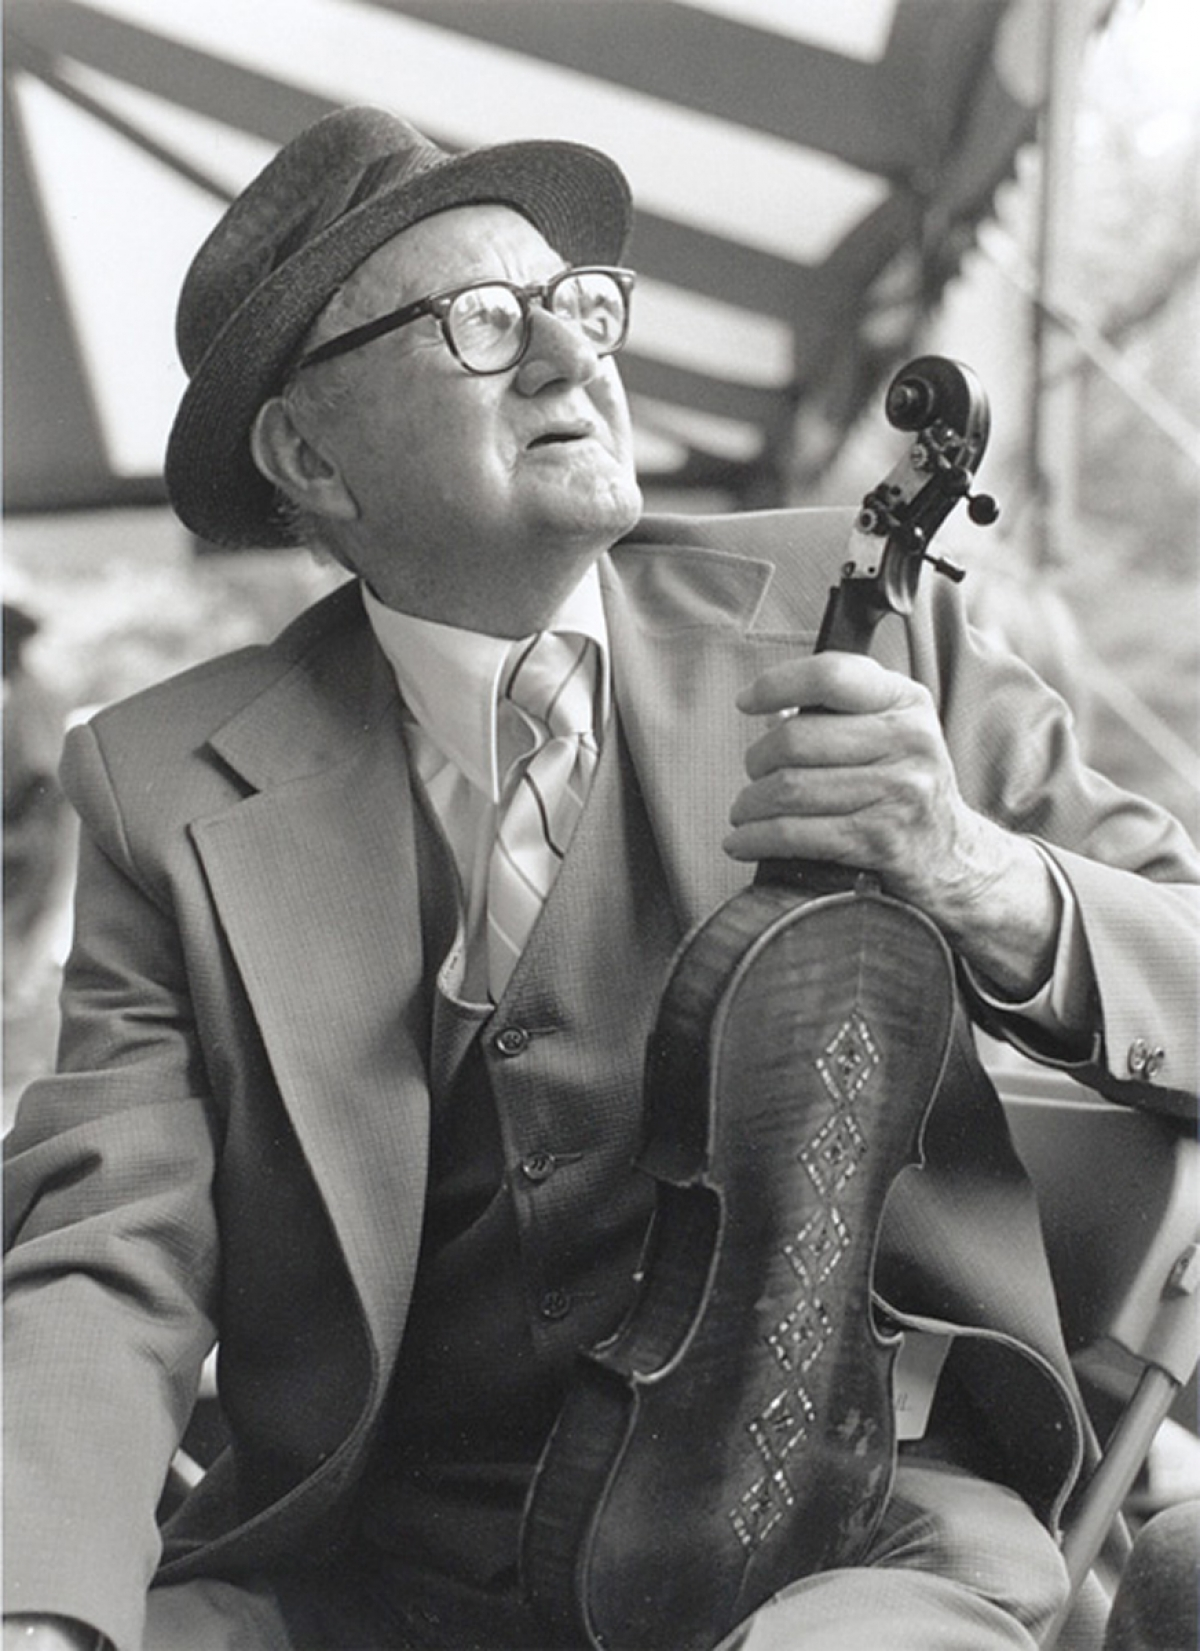 Thomas Jefferson Jarrell was born in Surry County, North Carolina. He is considered one of the most influential fiddle players of his time, sharing his talents and teaching style with interested musicians.  Jarrell's style was notable for its expressiveness and he was adept at singing while playing.  His formidable technique and voice continue to influence modern enthusiasts of the Appalachian old-time music through recordings today.